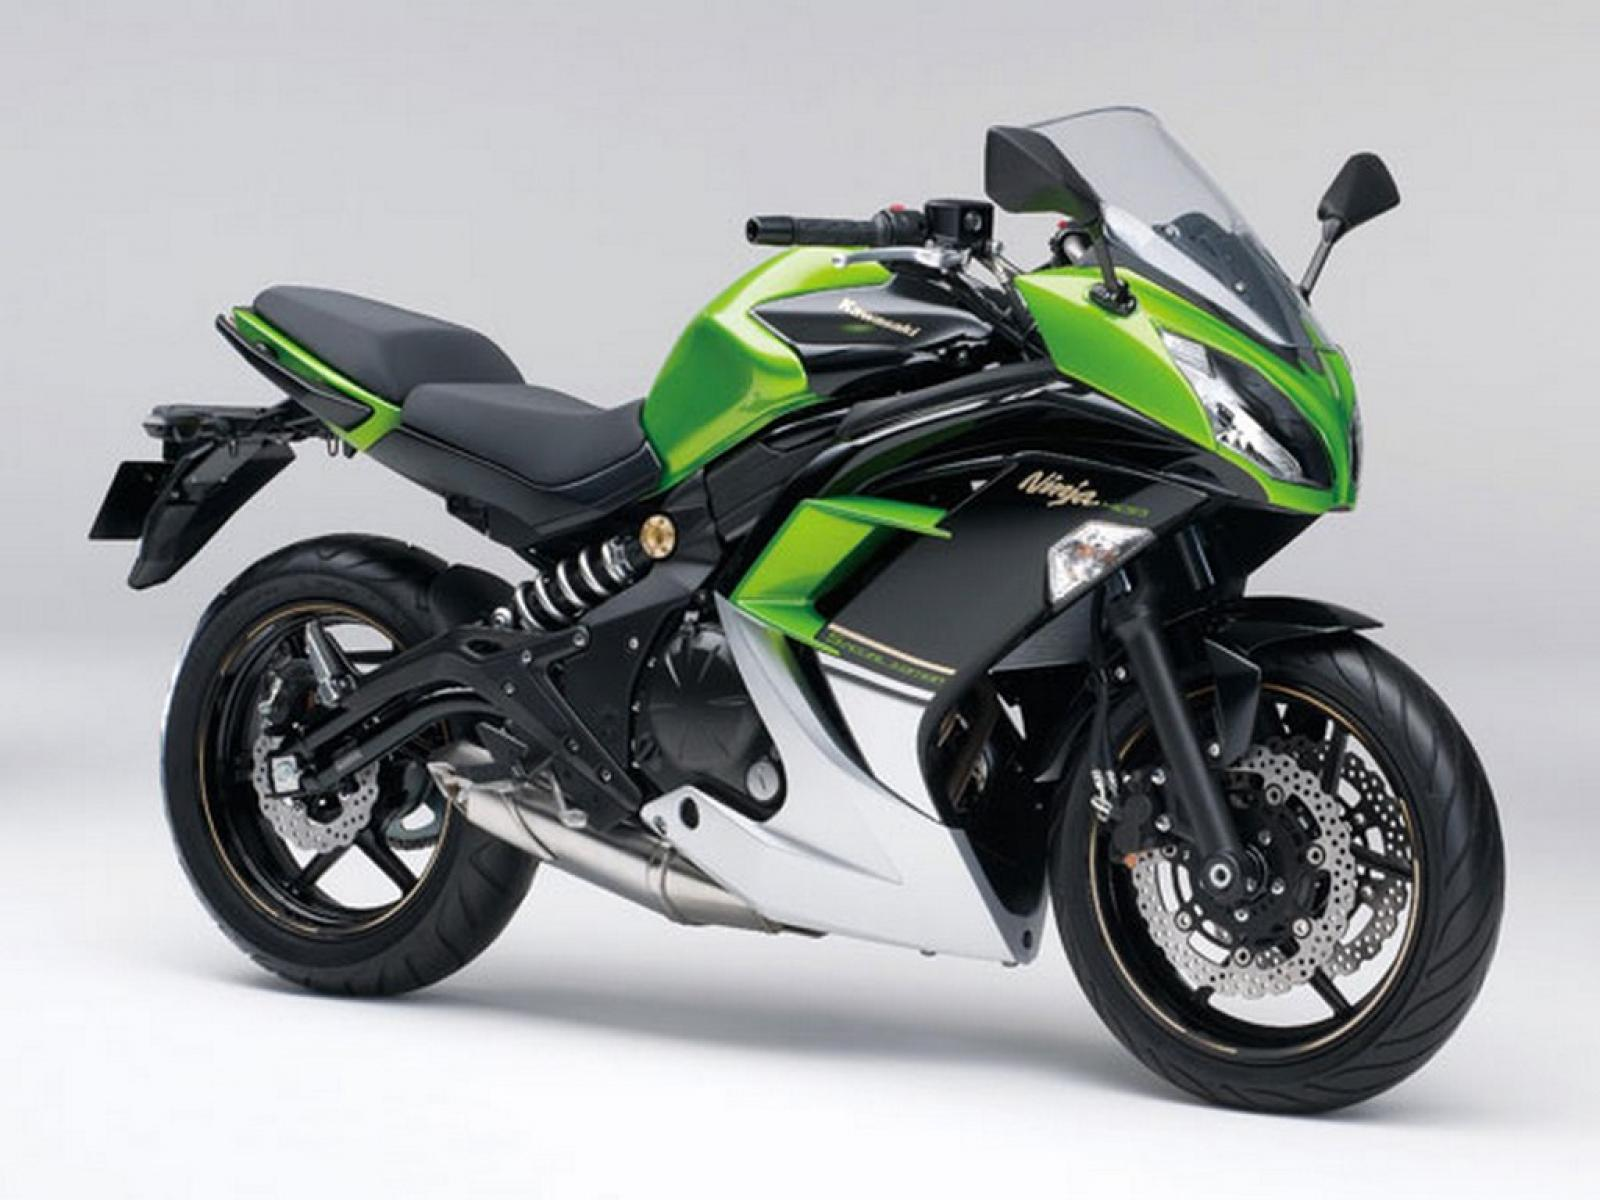 2014 kawasaki ninja 400 moto zombdrive com. Black Bedroom Furniture Sets. Home Design Ideas